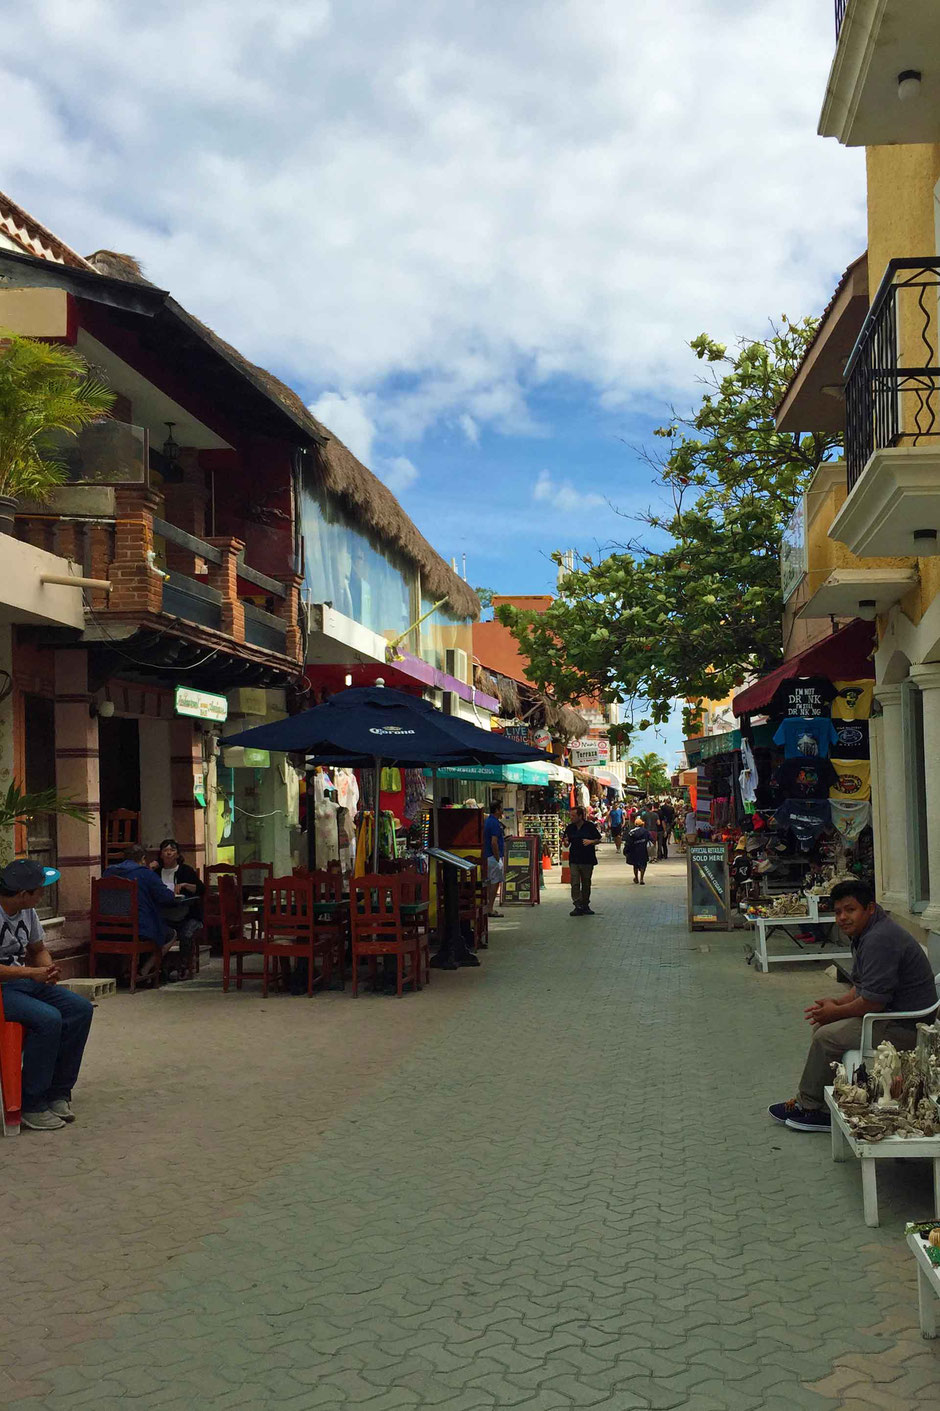 A Day of Exciting Family Fun on Isla Mujeres - Walking down the charming pedestrian only shopping street Miguel Hidalgo.